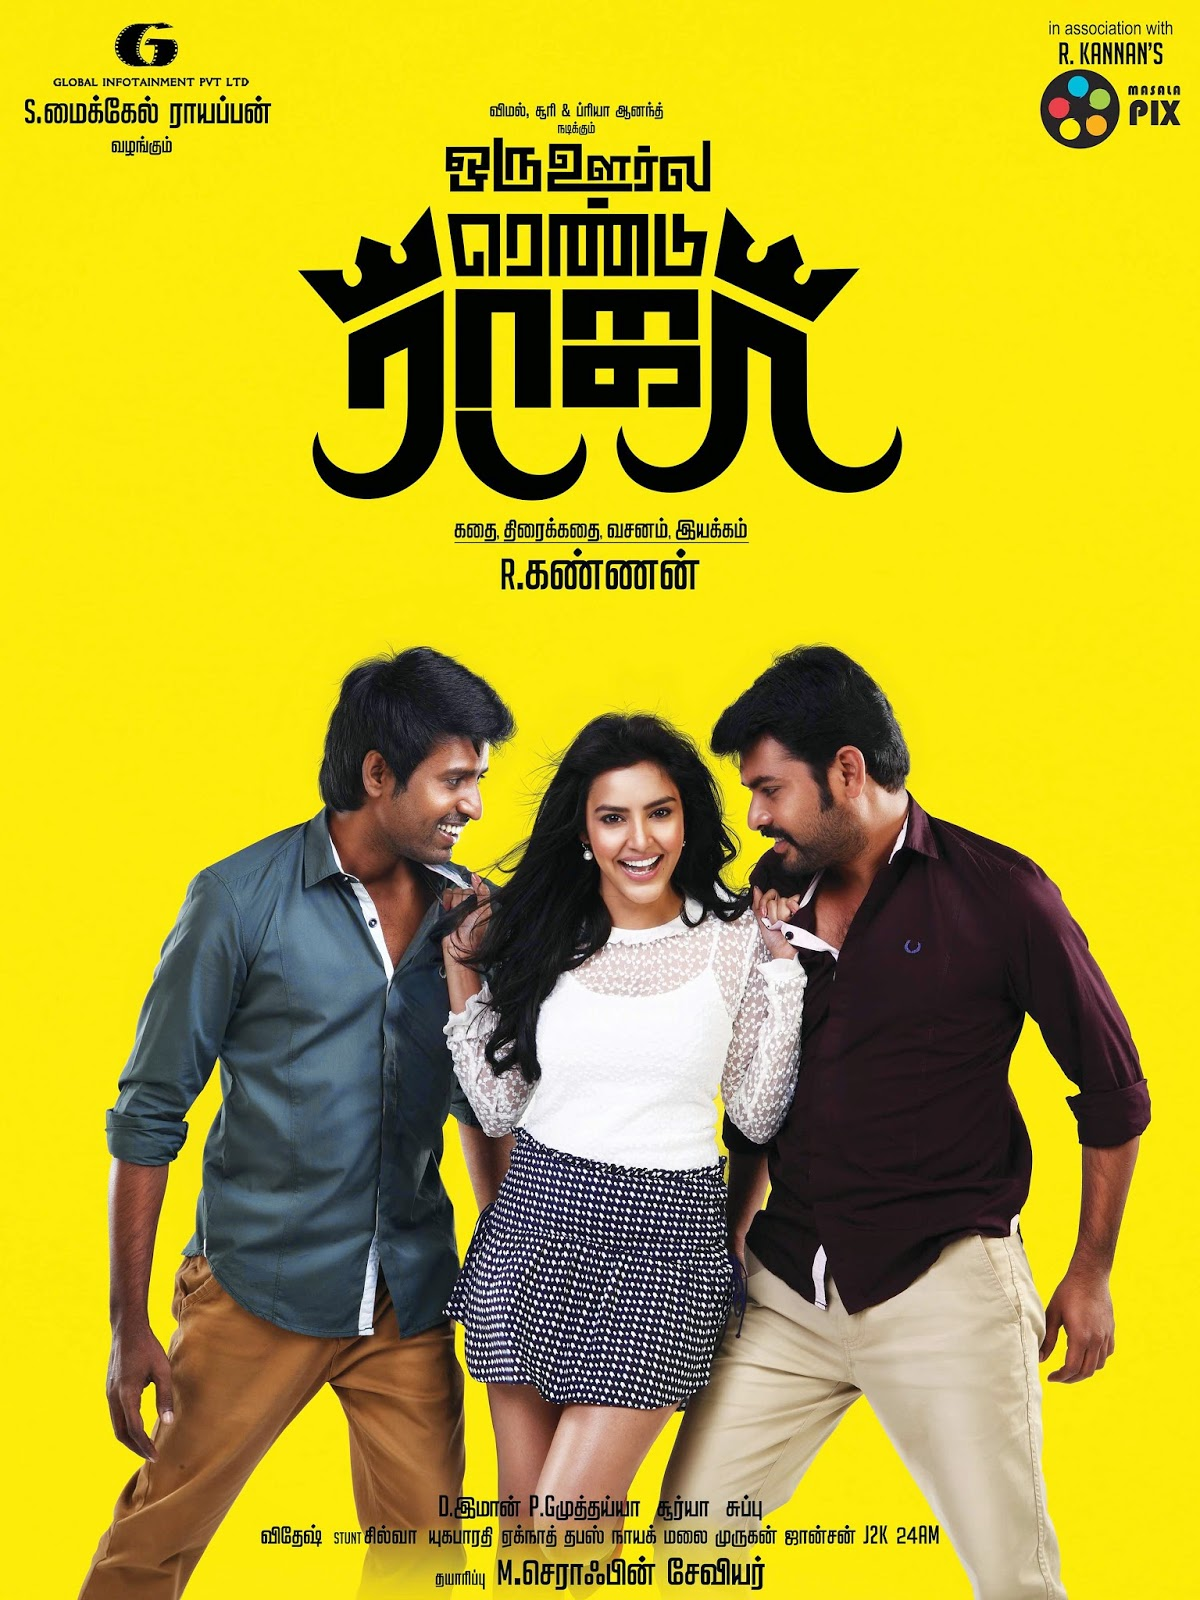 kukkuru kukkuru lyrics from Oru Oorla Rendu Raja